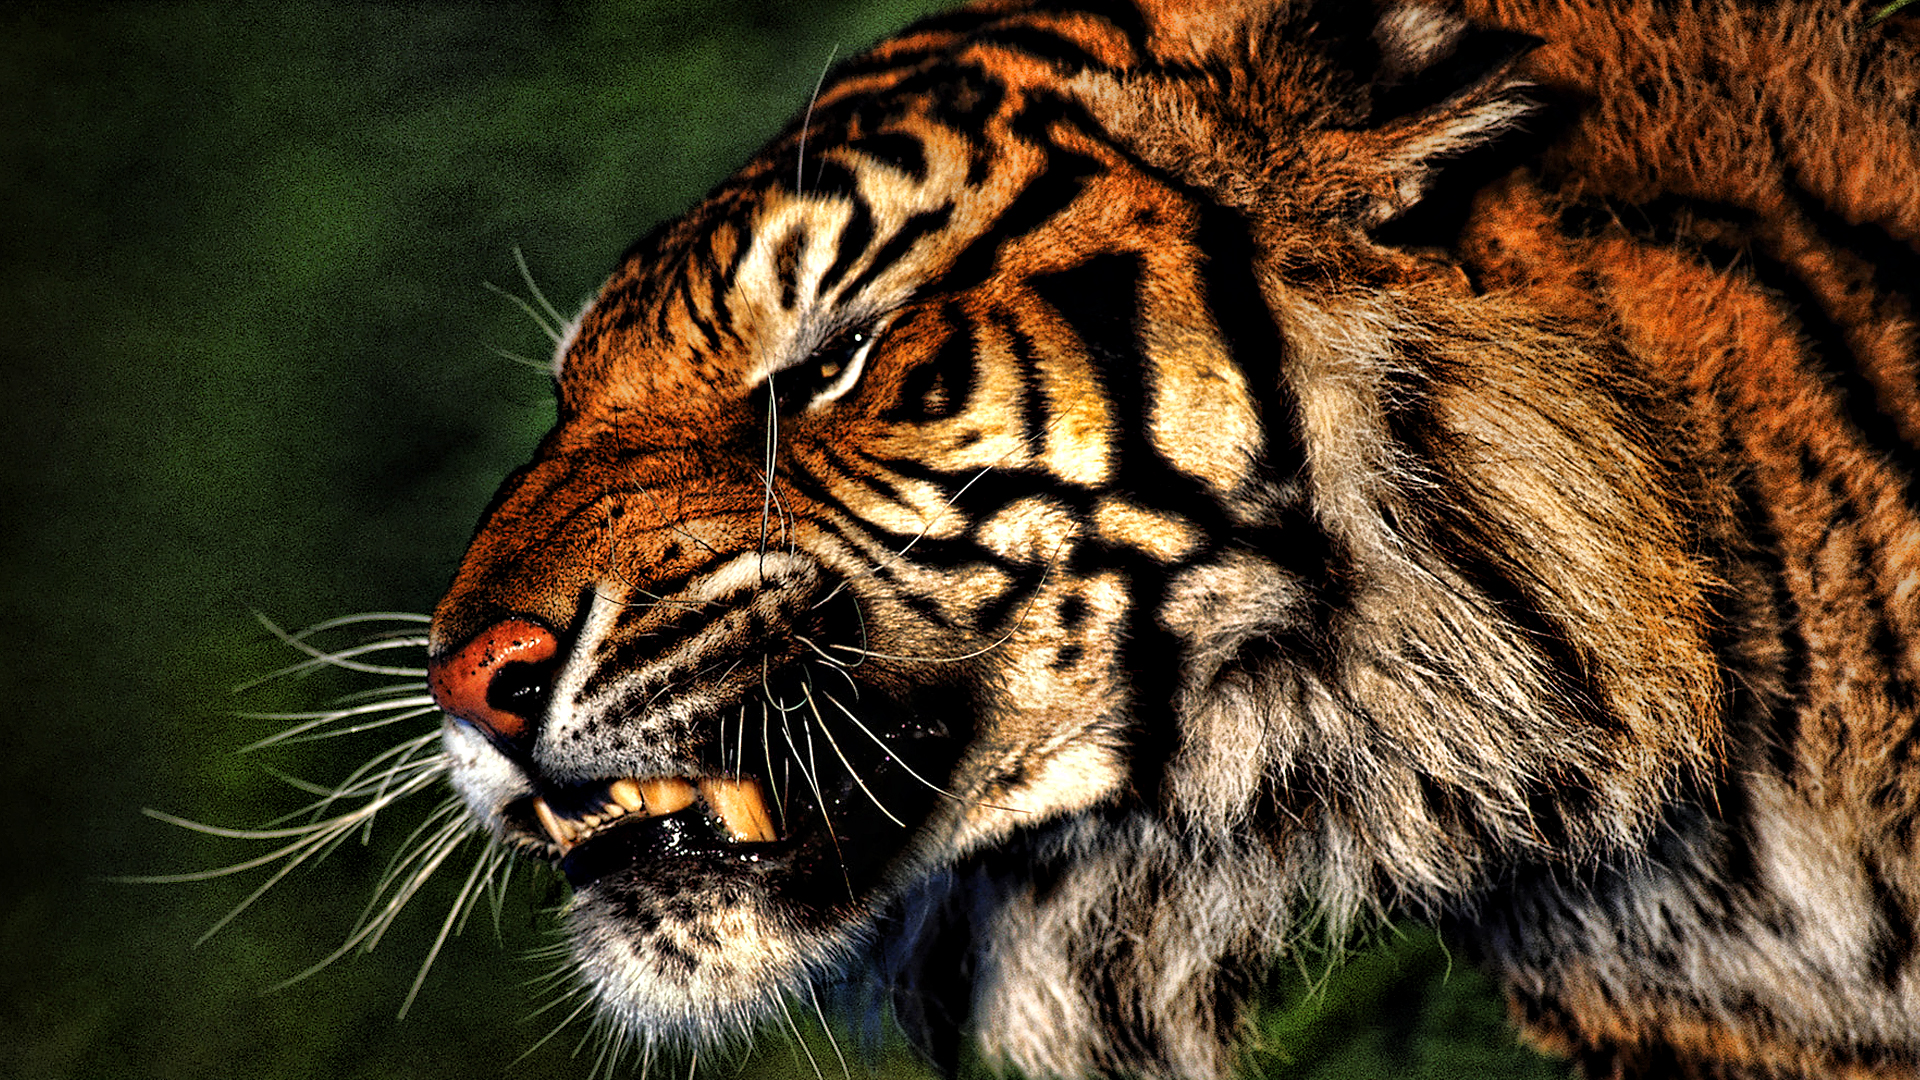 tiger wallpaper download which is under the tiger wallpapers 1920x1080